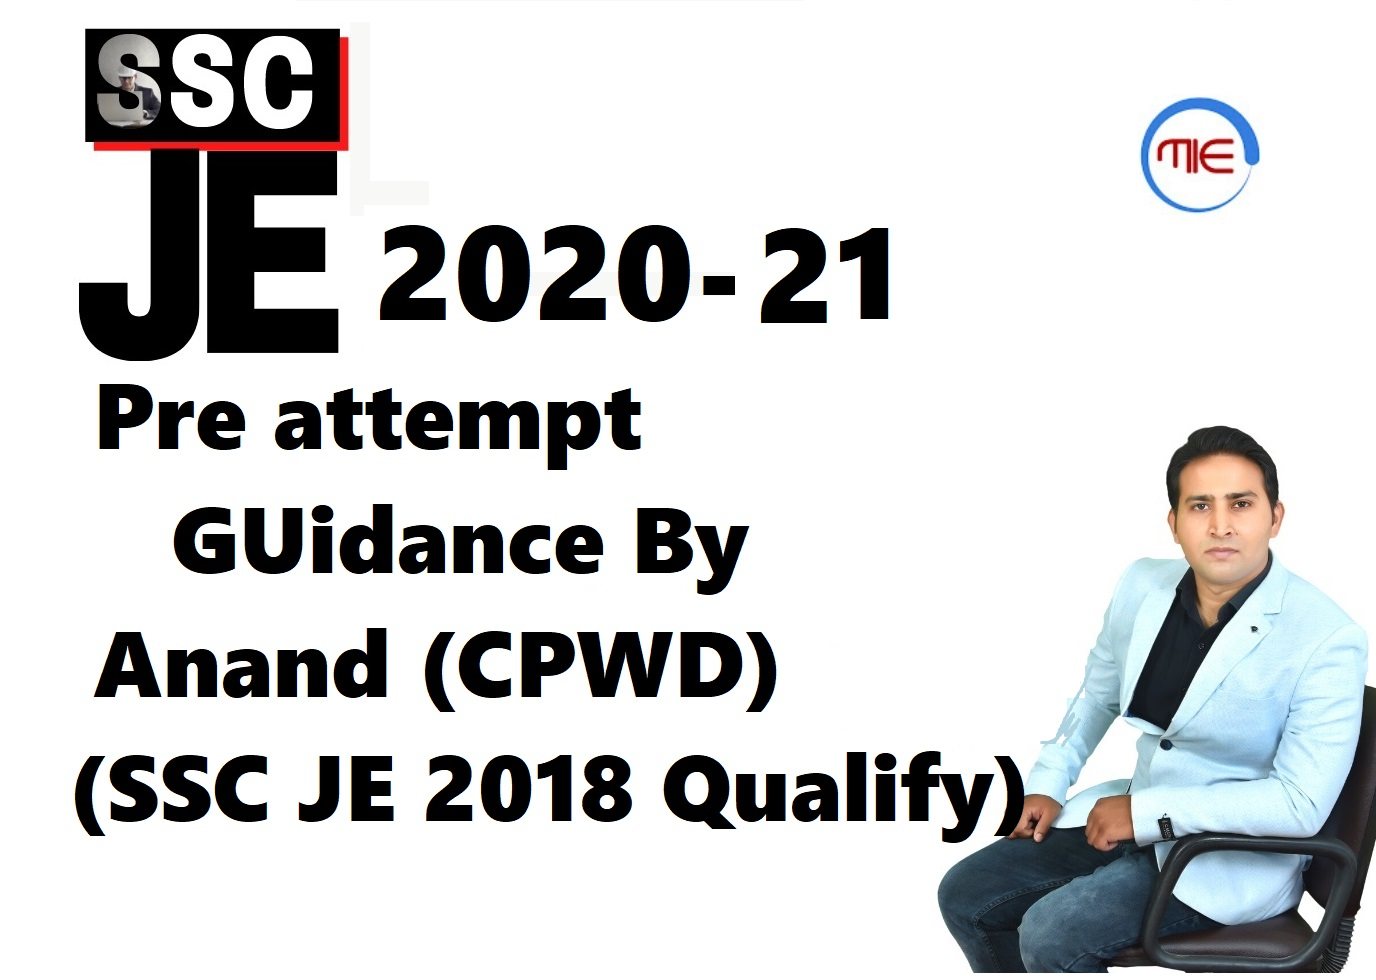 SSC JE Pre Guidance By Anand Gahukar (SSC JE 2018 Qualified)